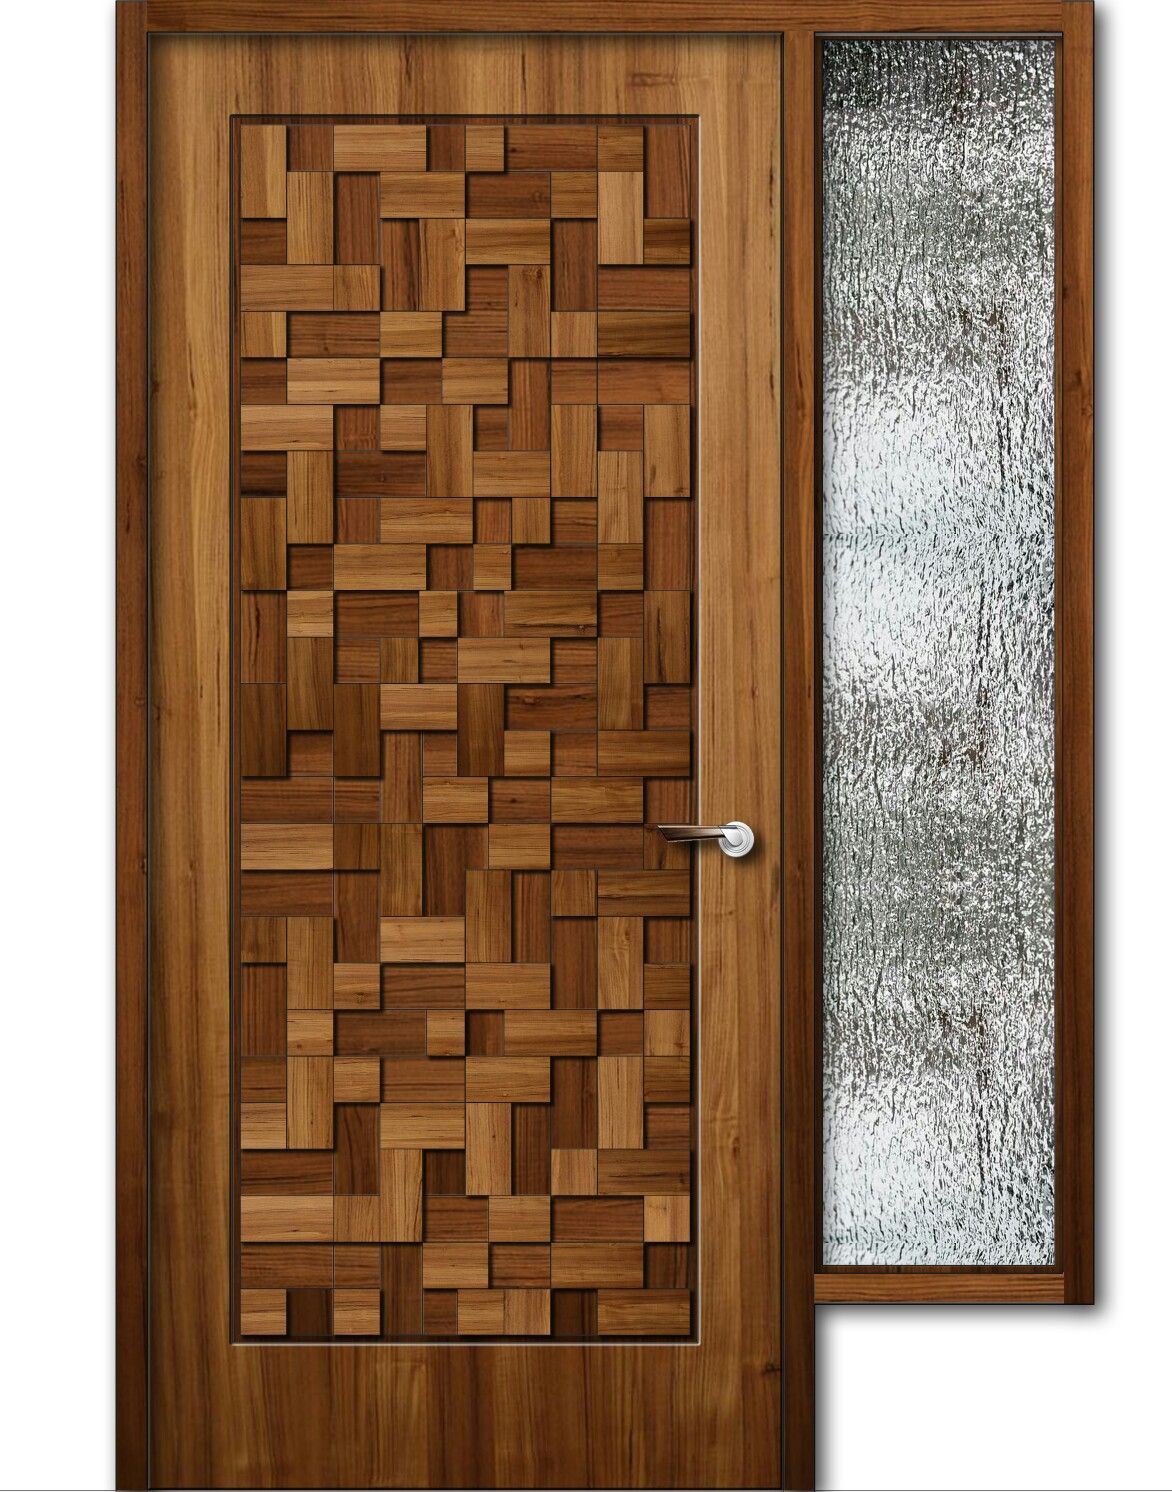 Teak Wood Finish Wooden Door With Window 8feet Height Doors